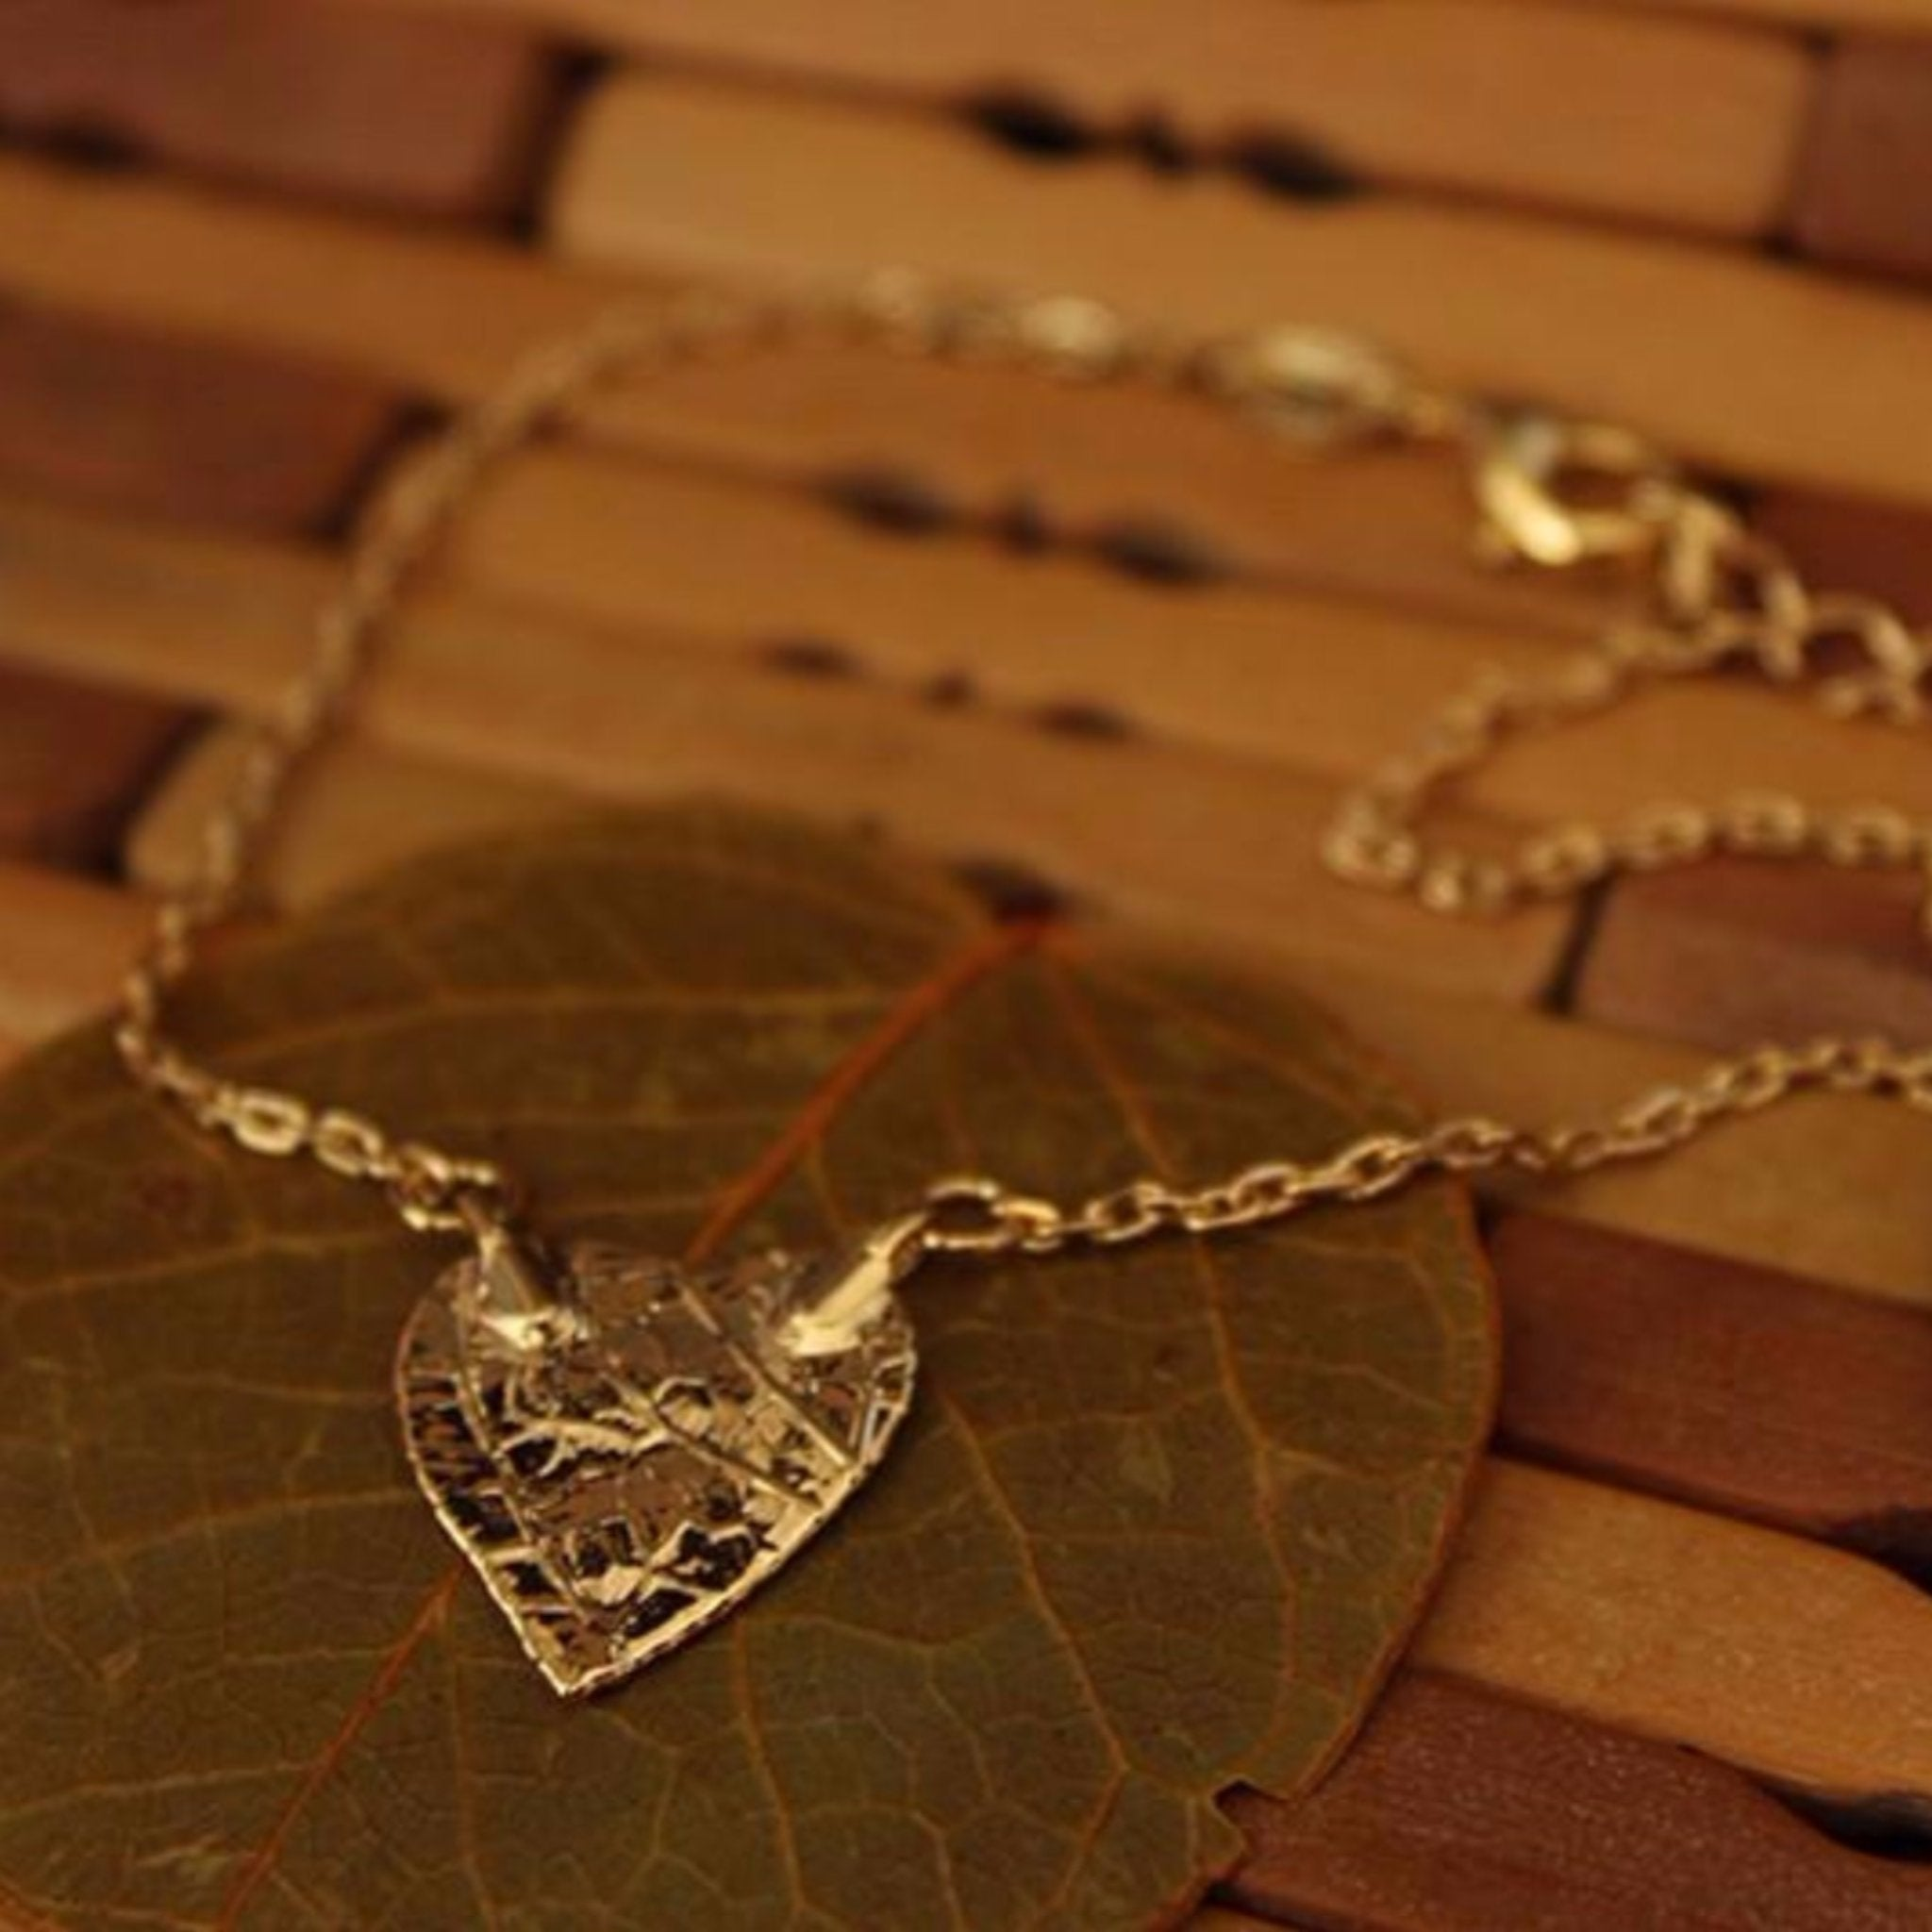 bracelet formato simply ankle made coracao anklet do shaped cerrado leaf gold nature with products heart tornozeleria